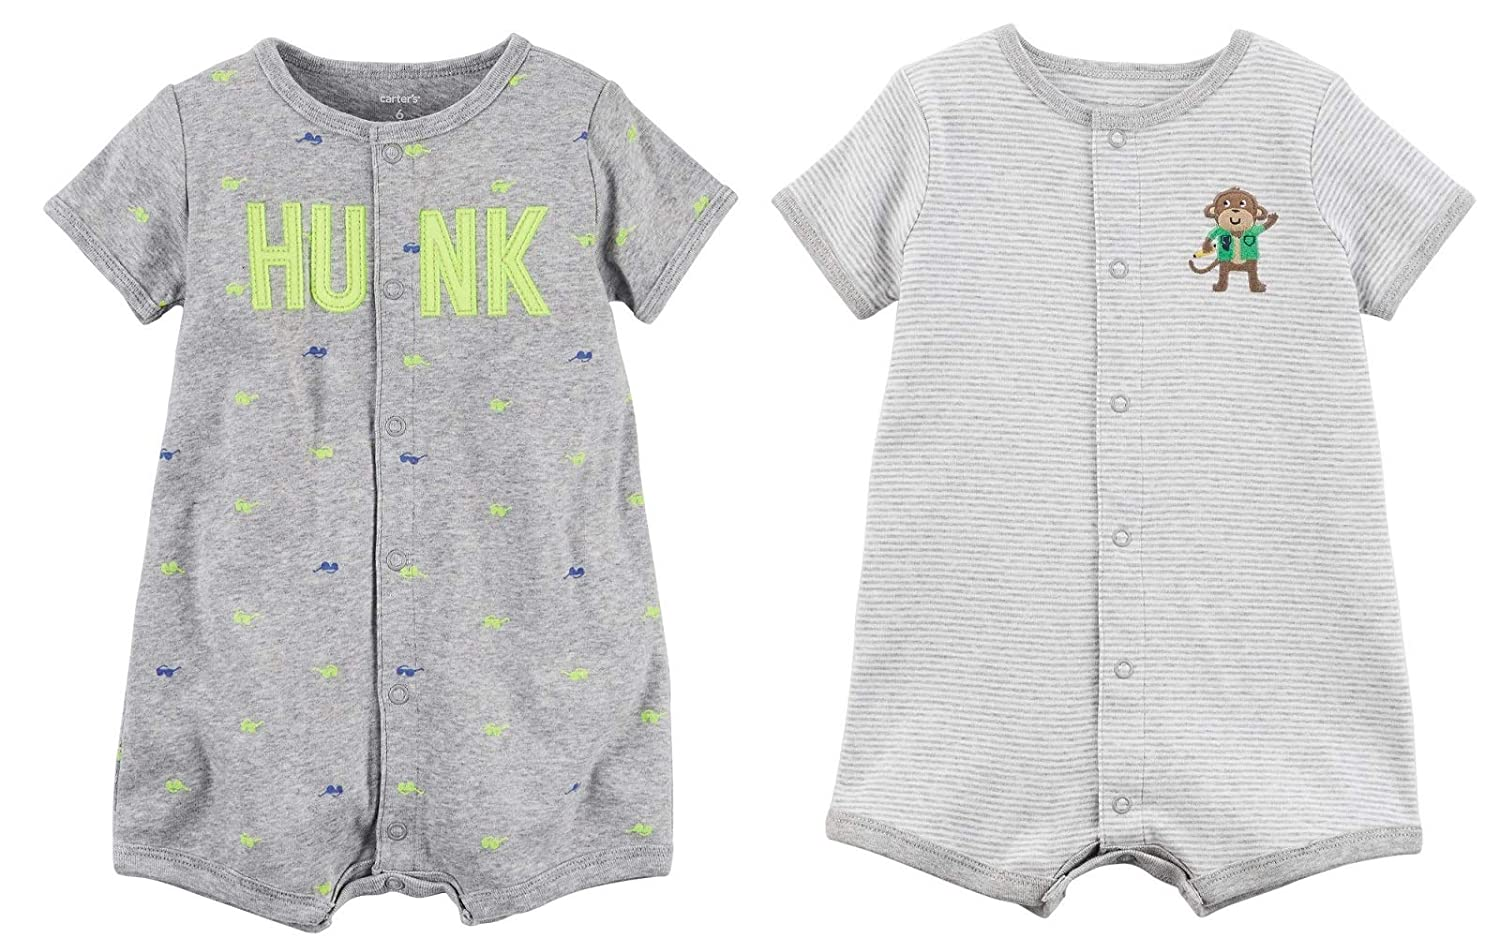 Carter's Carter's Baby Clothing SHIRT ベビーボーイズ SHIRT Clothing B07JQ597R8 マルチグレー 6 Months, レインボーカフェ:403b6b05 --- itxassou.fr